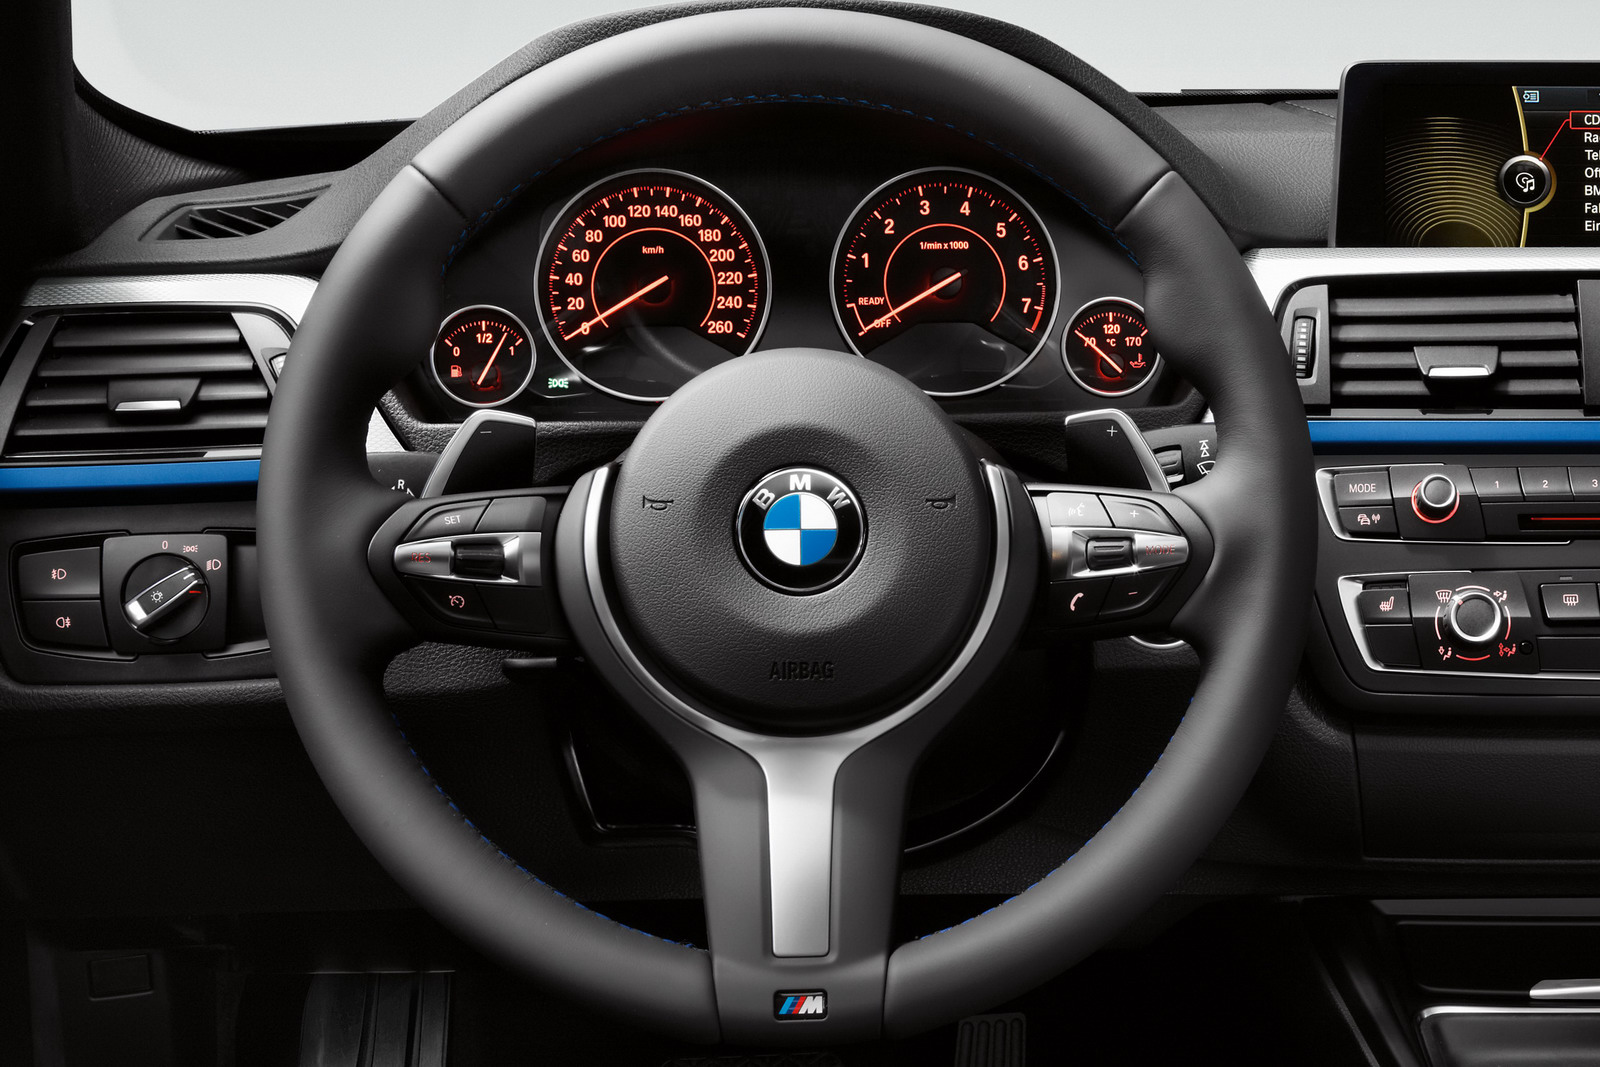 BMW 320d Sport Line F30 3 Series Wallpapers Specifications ...